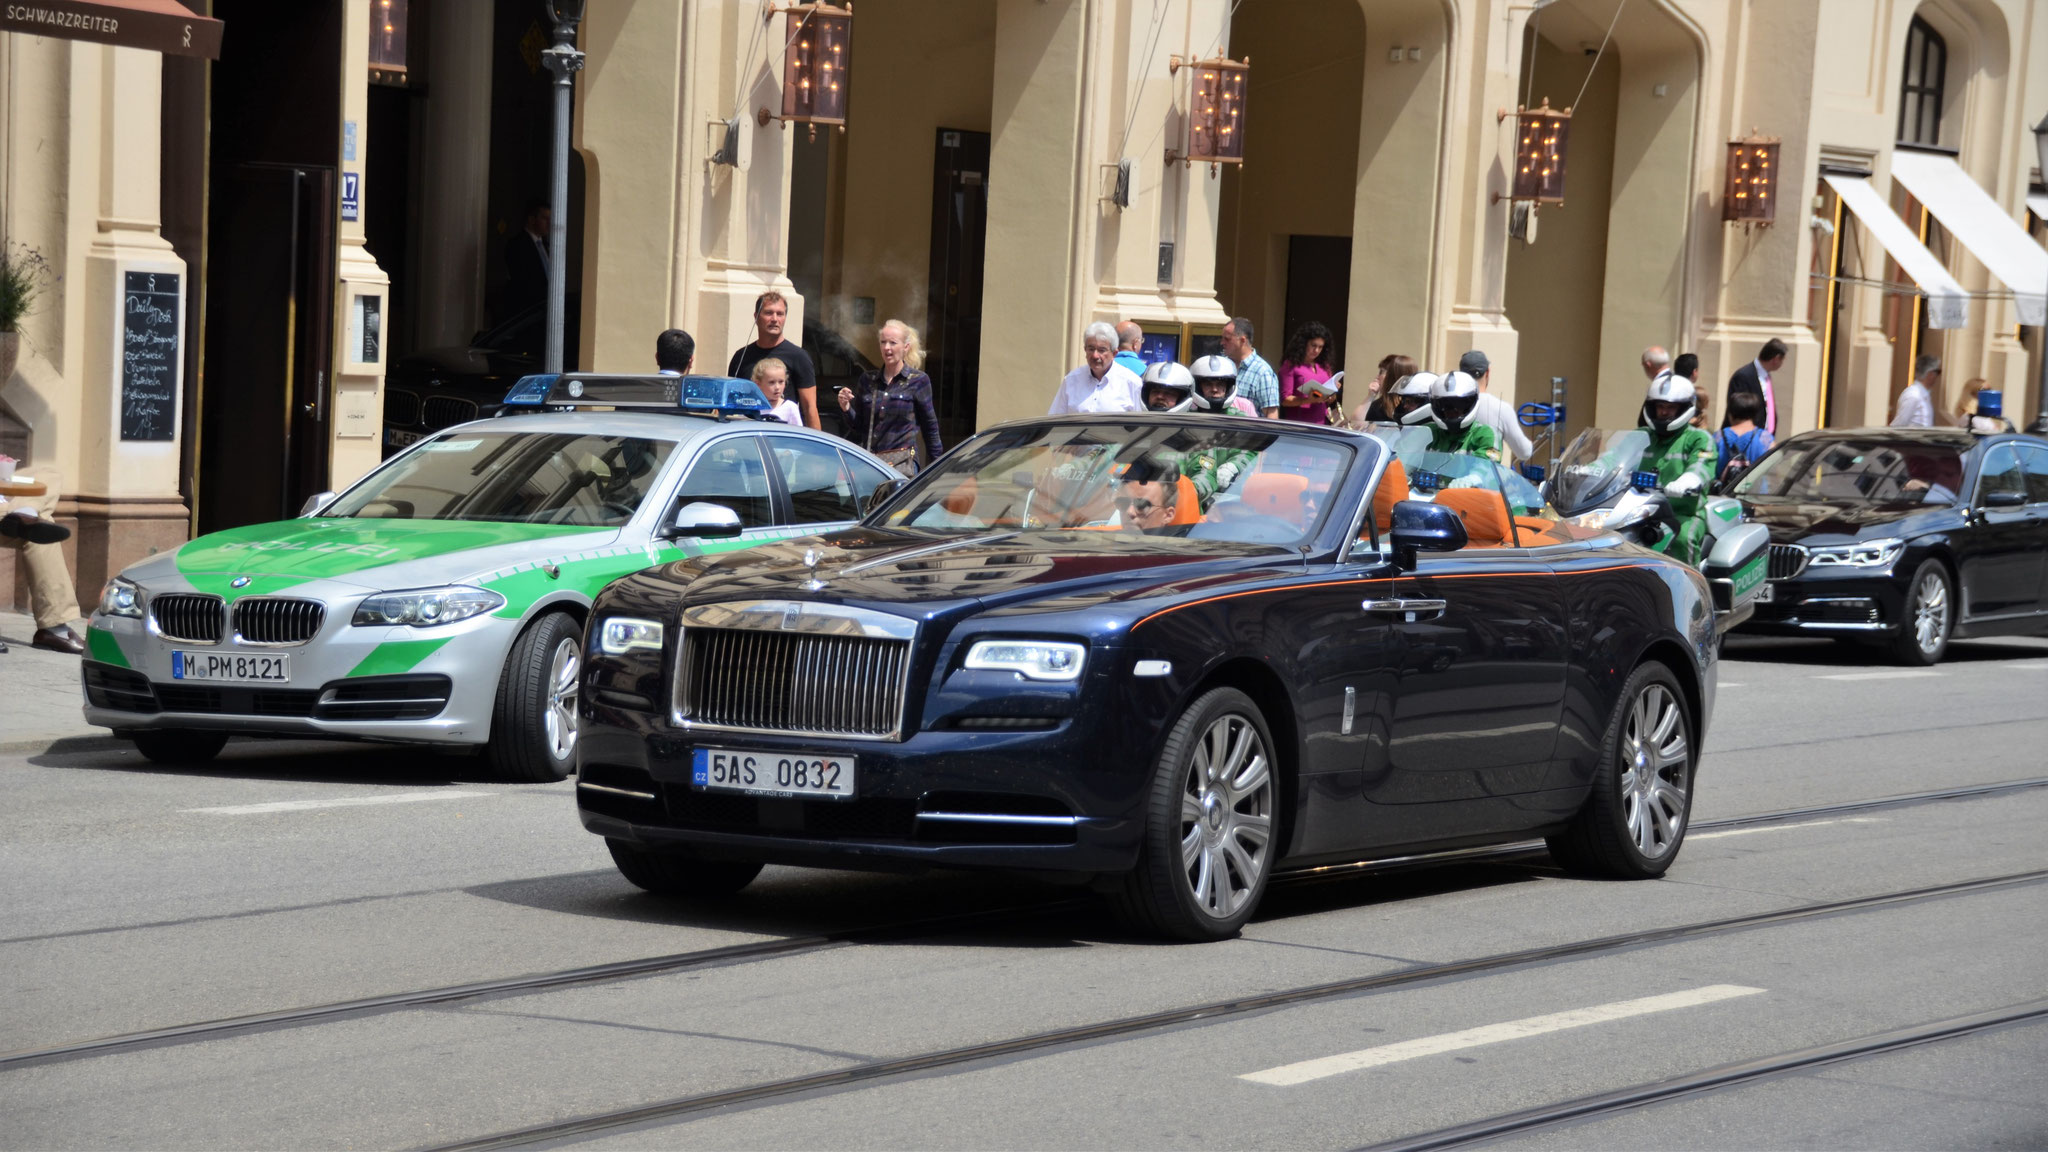 Rolls Royce Dawn - 5AS-0832 (CZ)